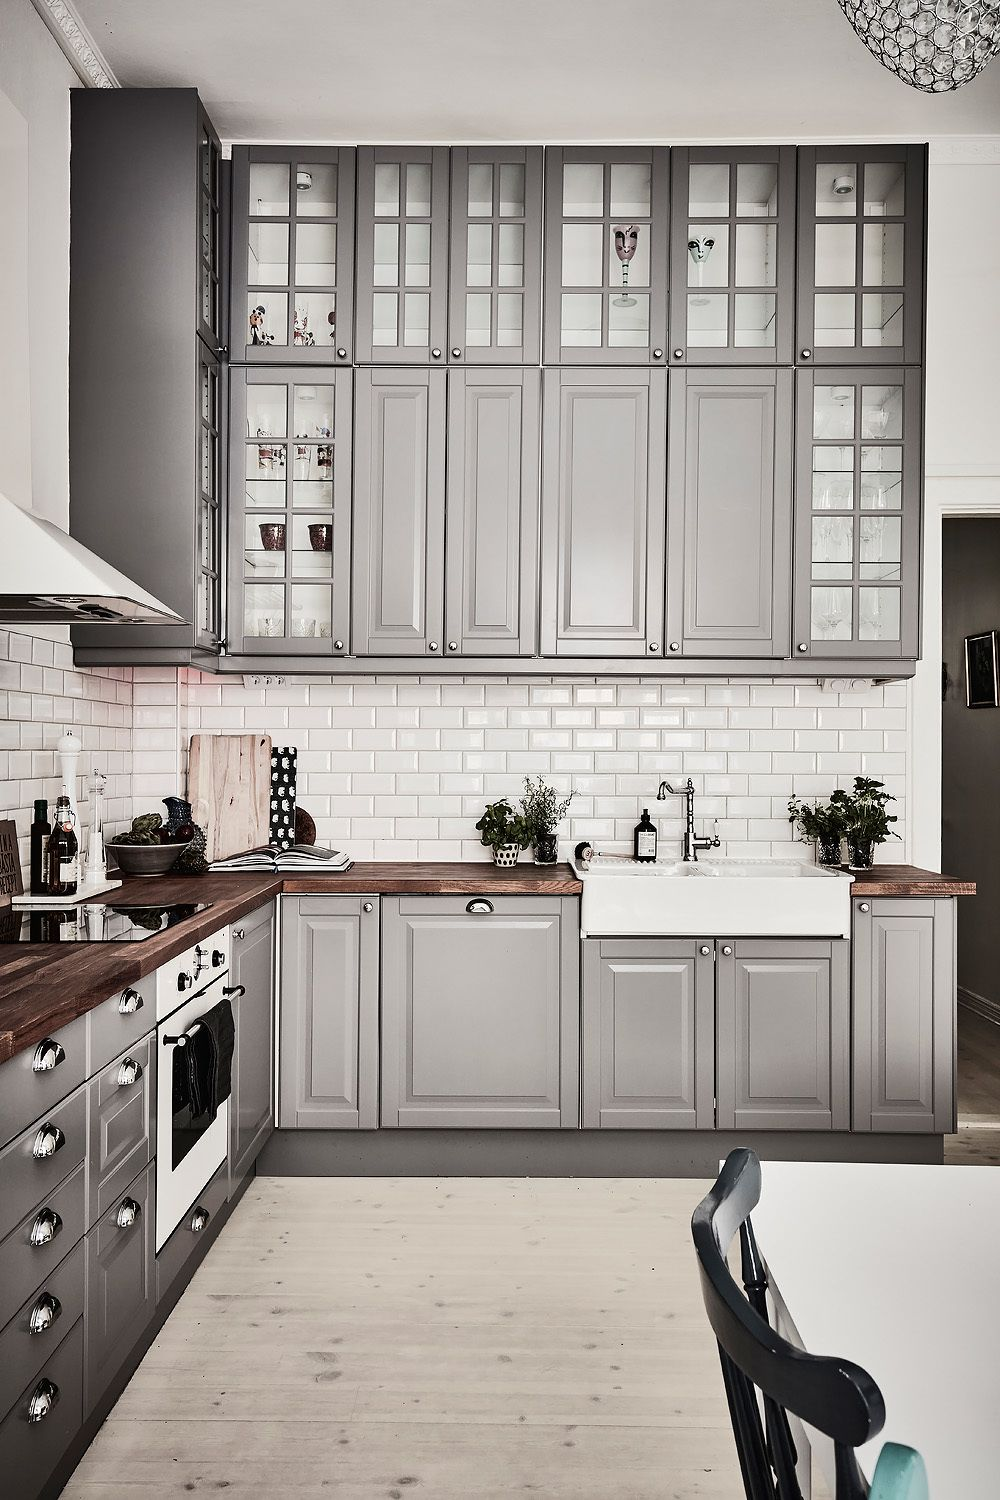 Inspiring Kitchens You Wont Believe Are IKEA Decorating Tips - Where to buy gray kitchen cabinets